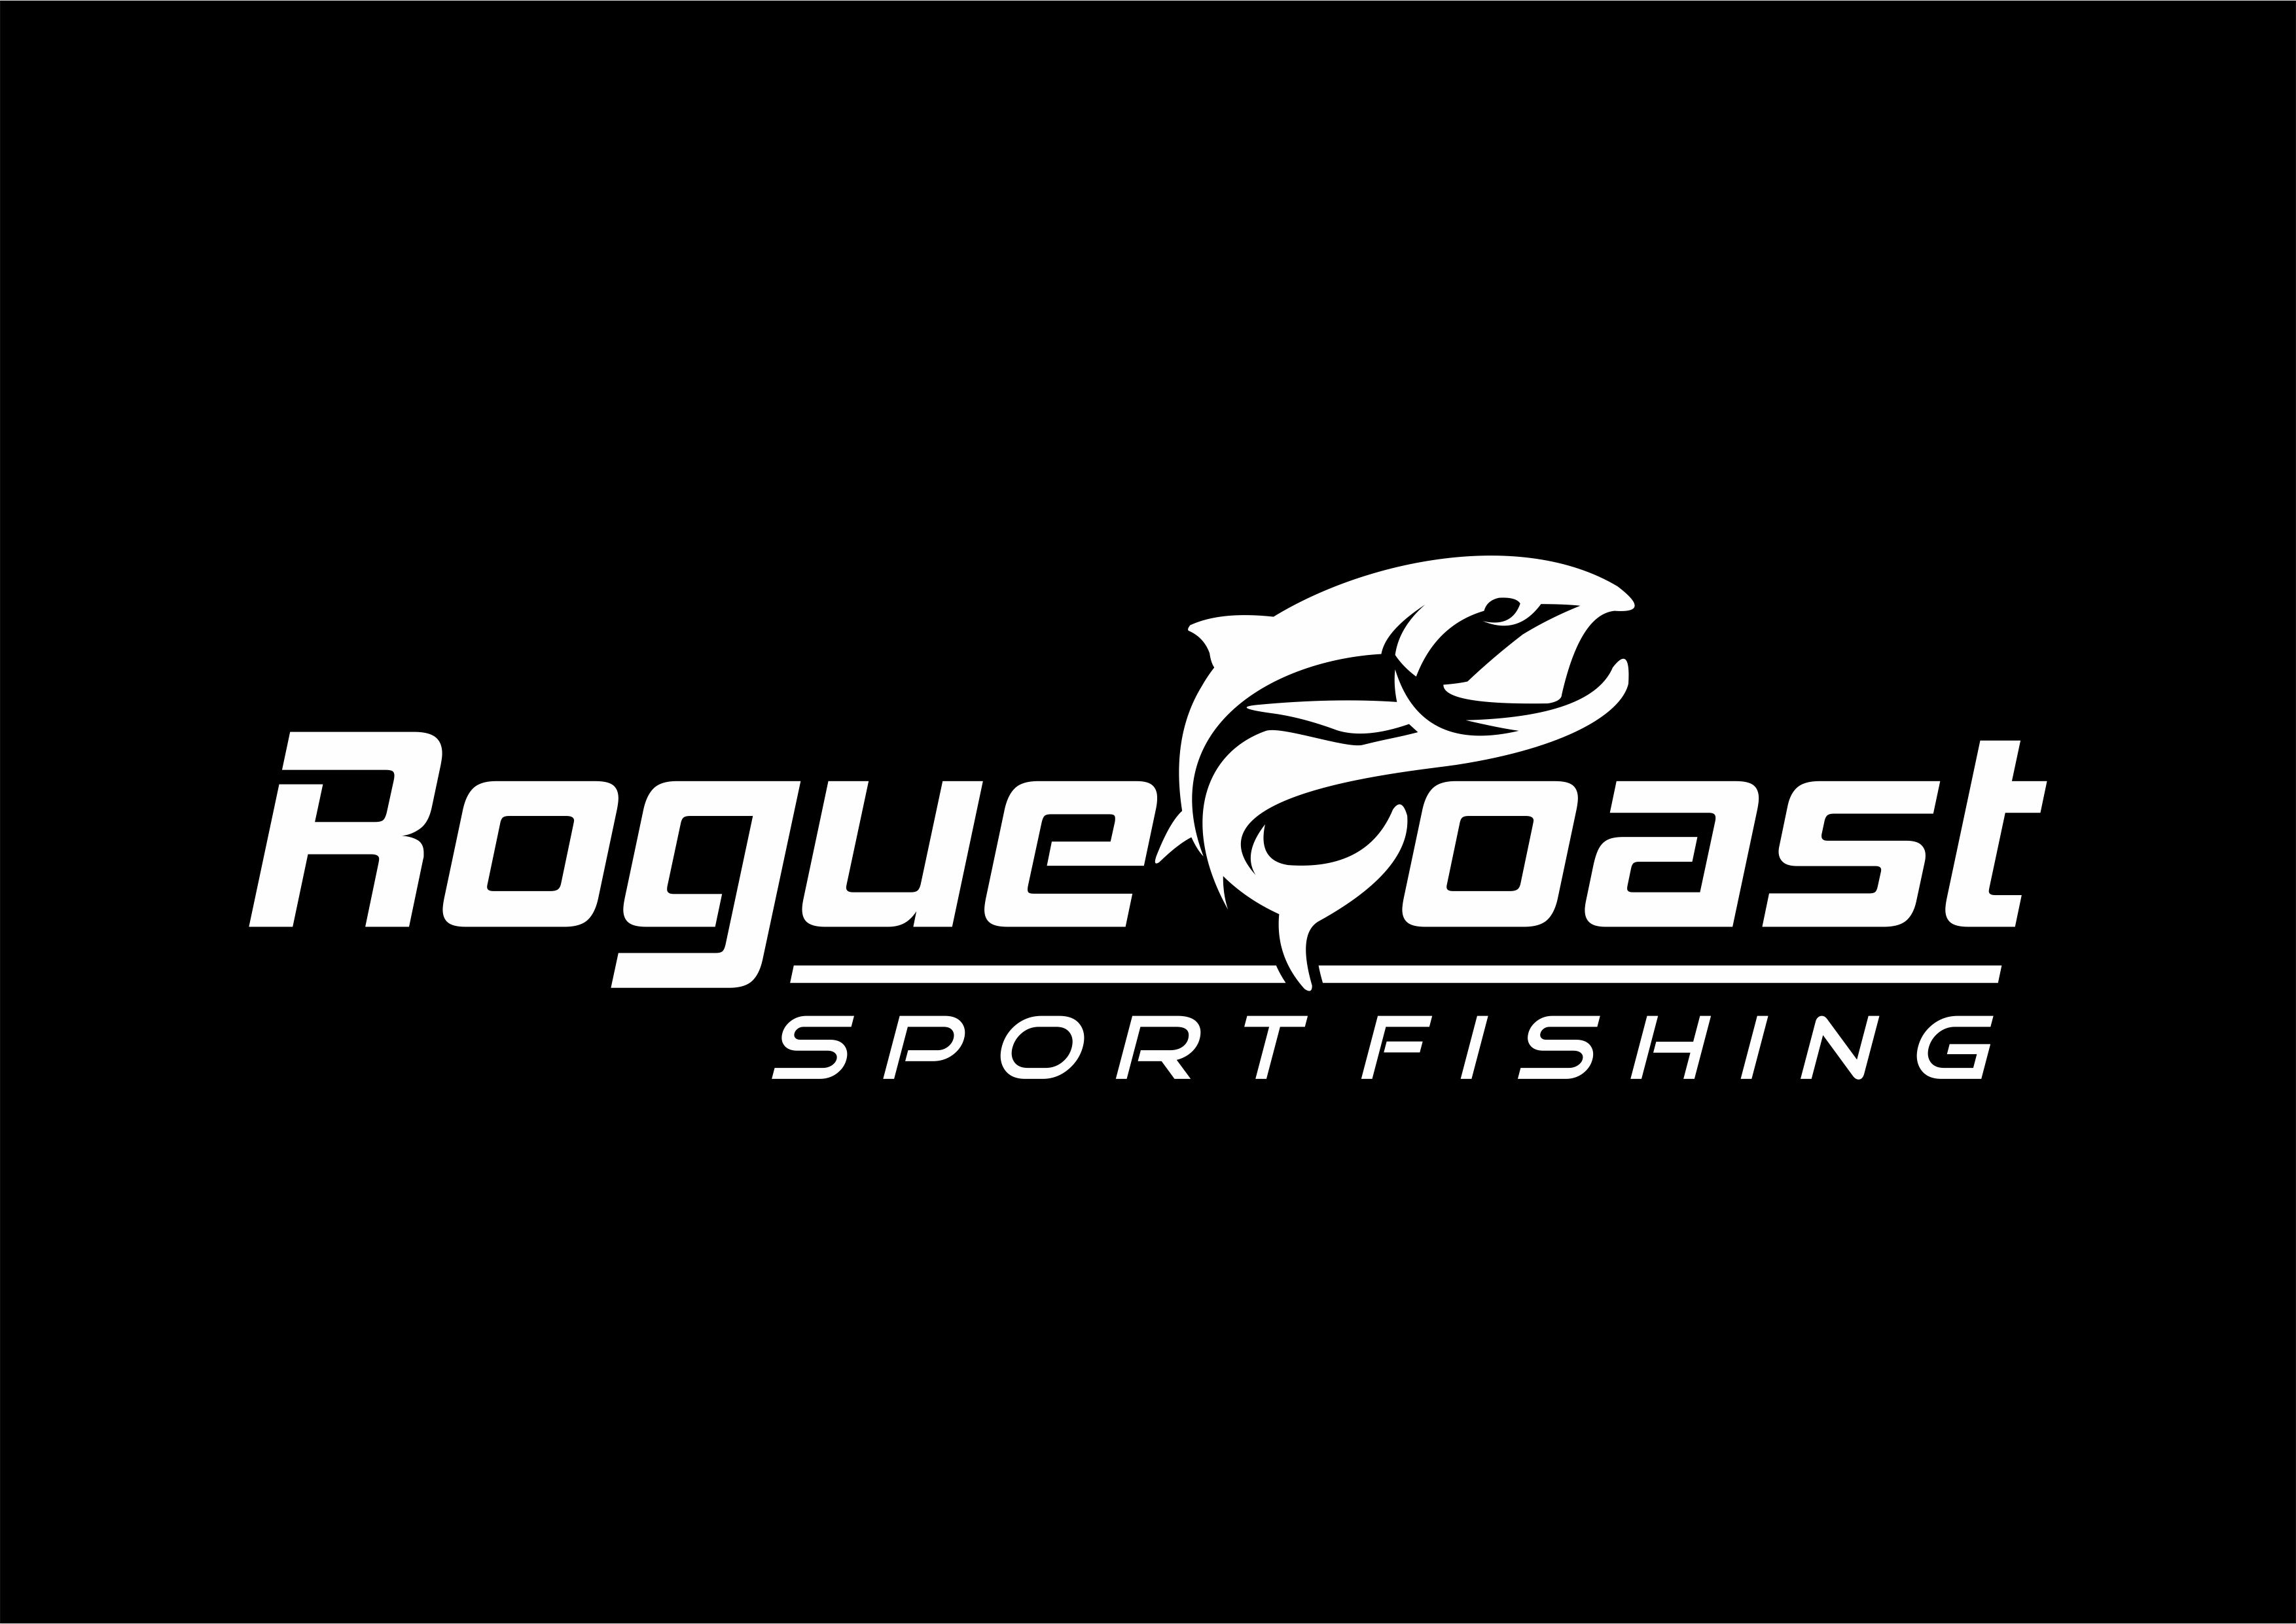 Rogue Coast Sport Fishing